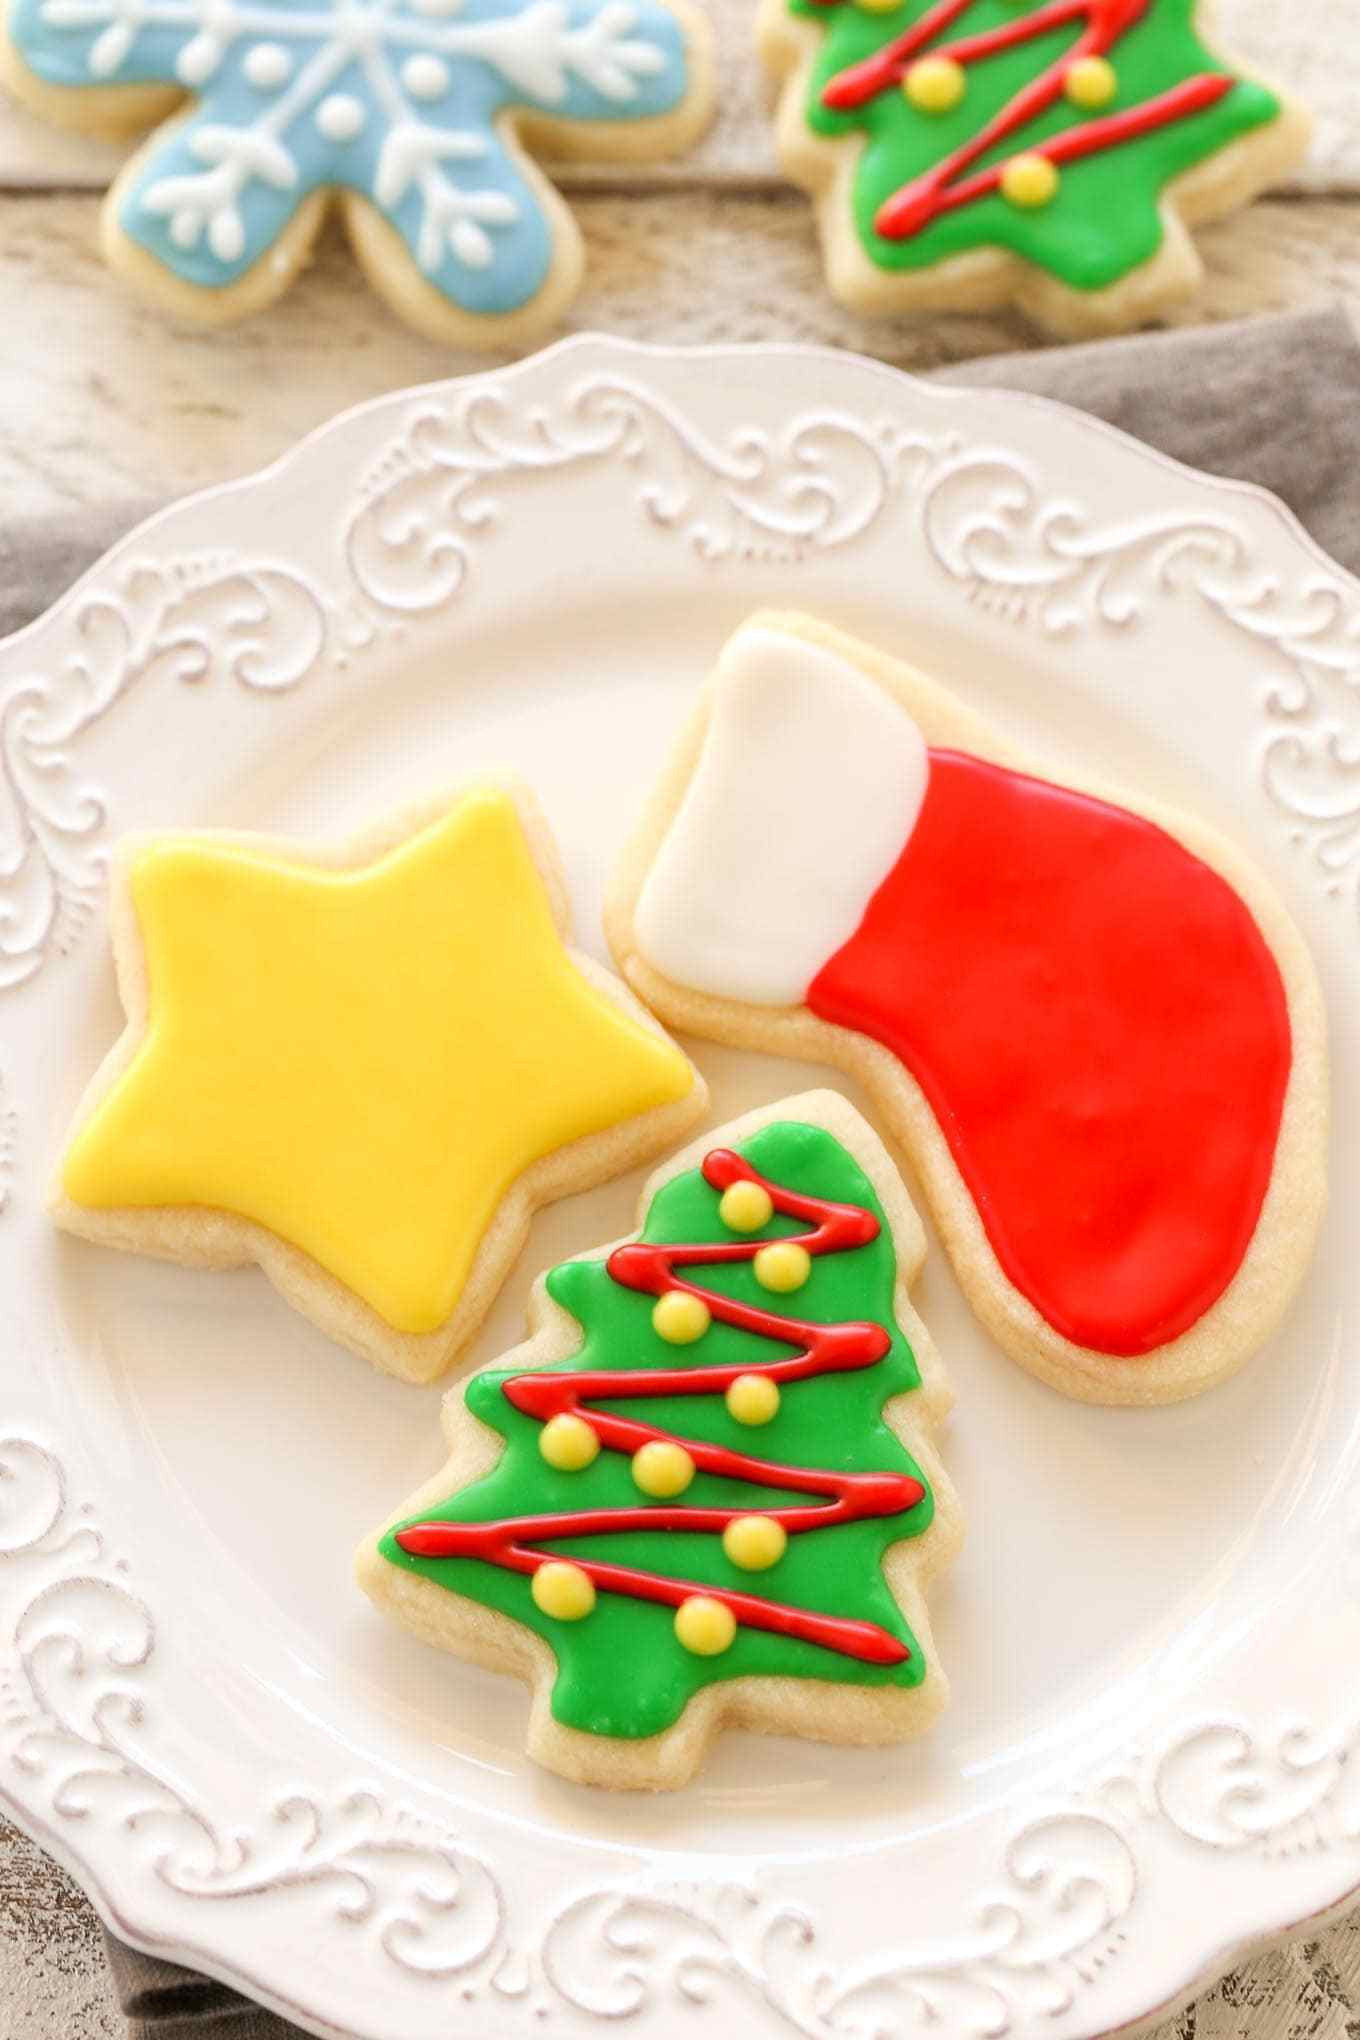 Christmas Cookies Cut Outs Recipes  Soft Christmas Cut Out Sugar Cookies Live Well Bake ten